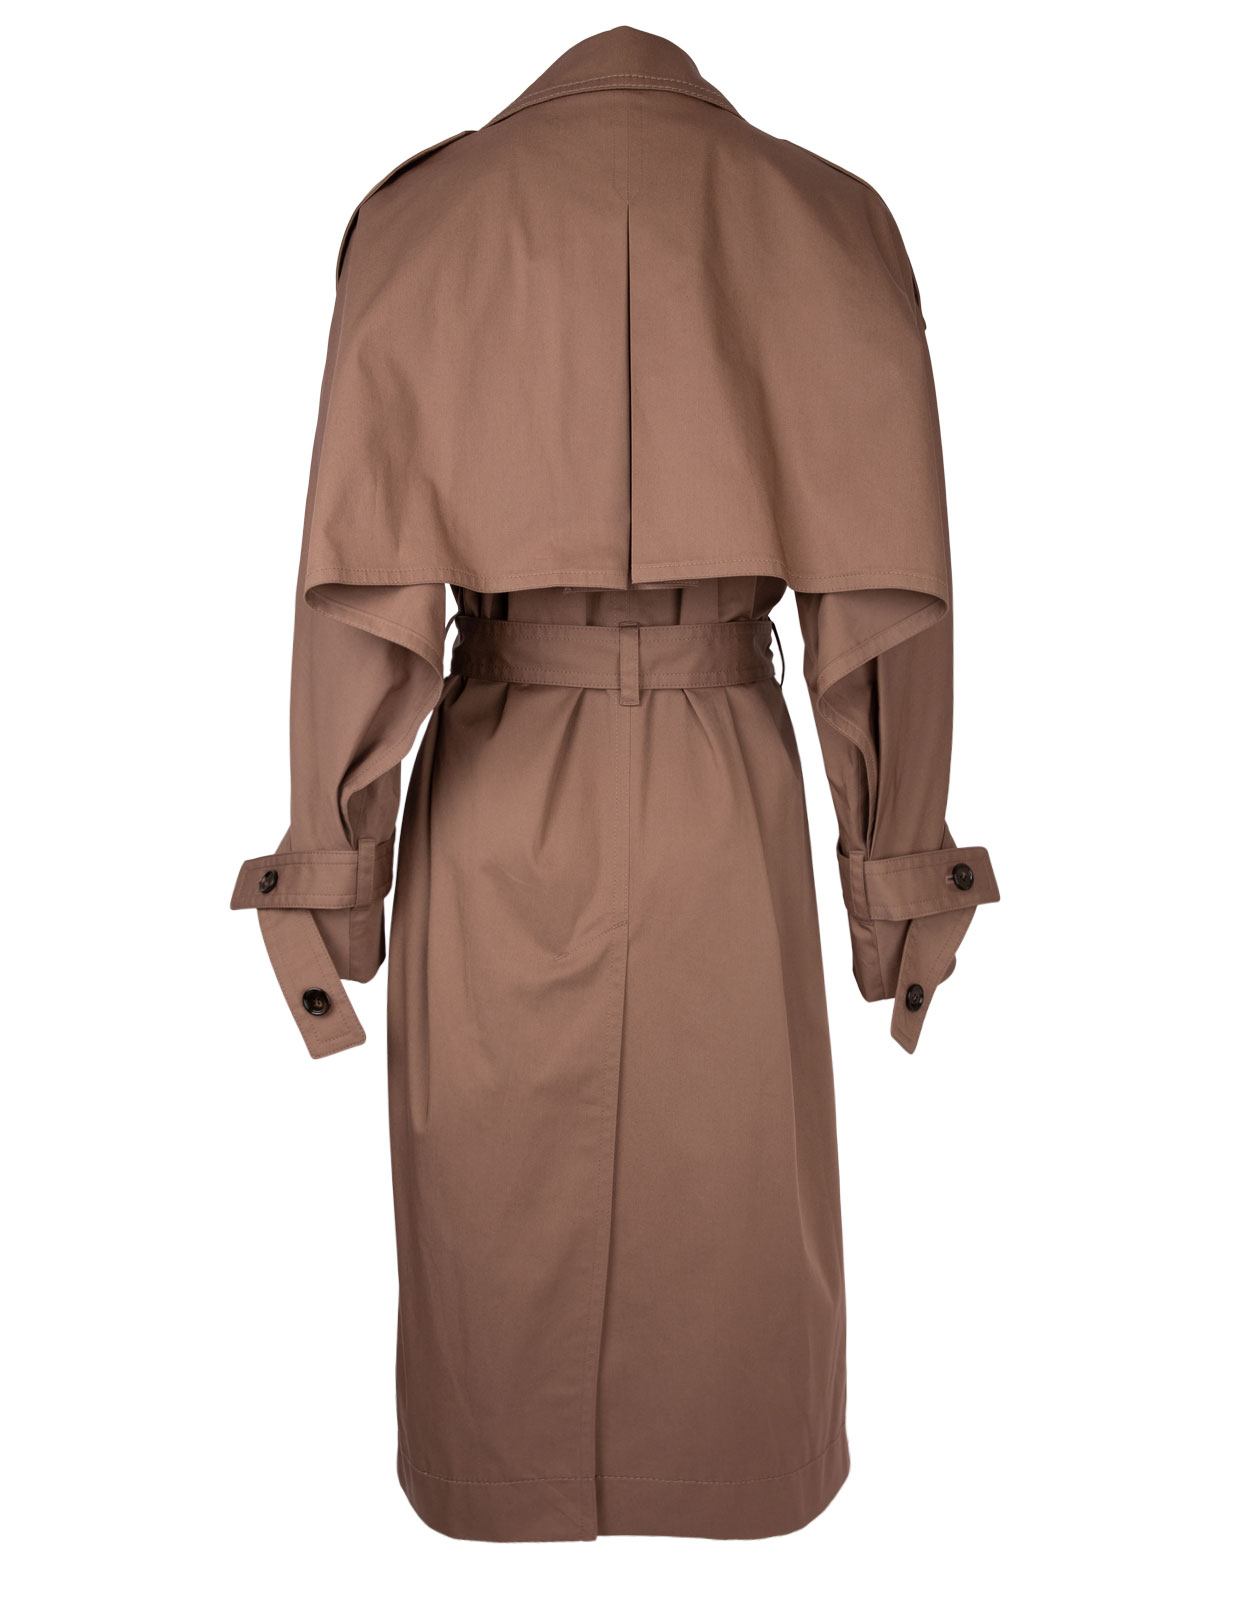 Cotton trench coat light brown LightBrown